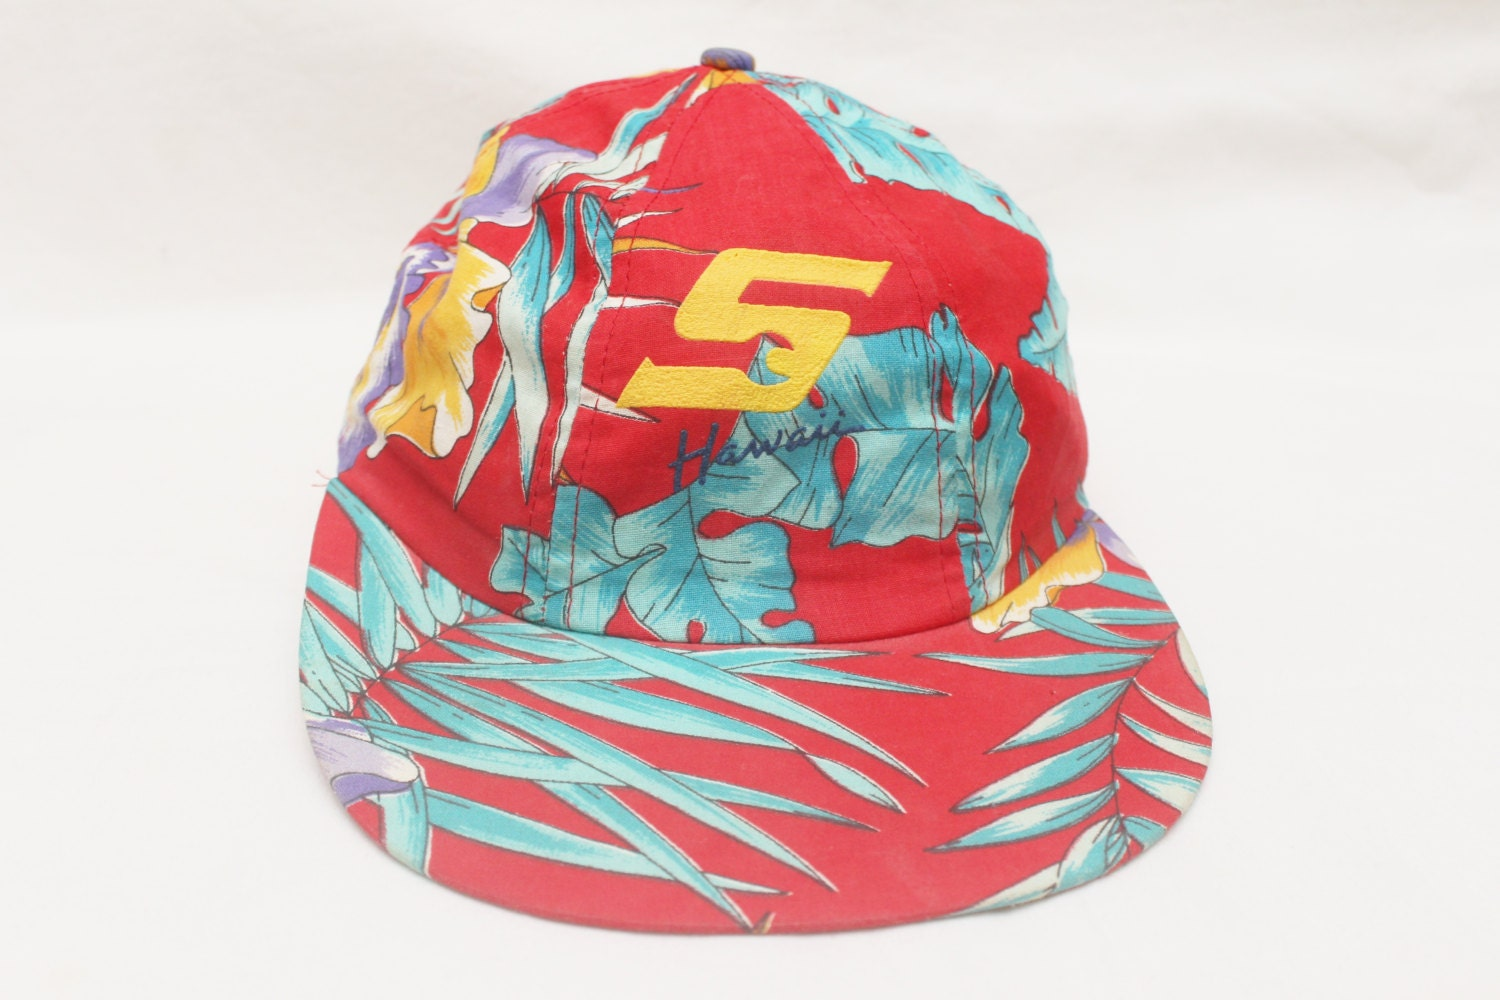 c1eaeb33619 Where To Buy Snapback Hats Calgary - Parchment N Lead